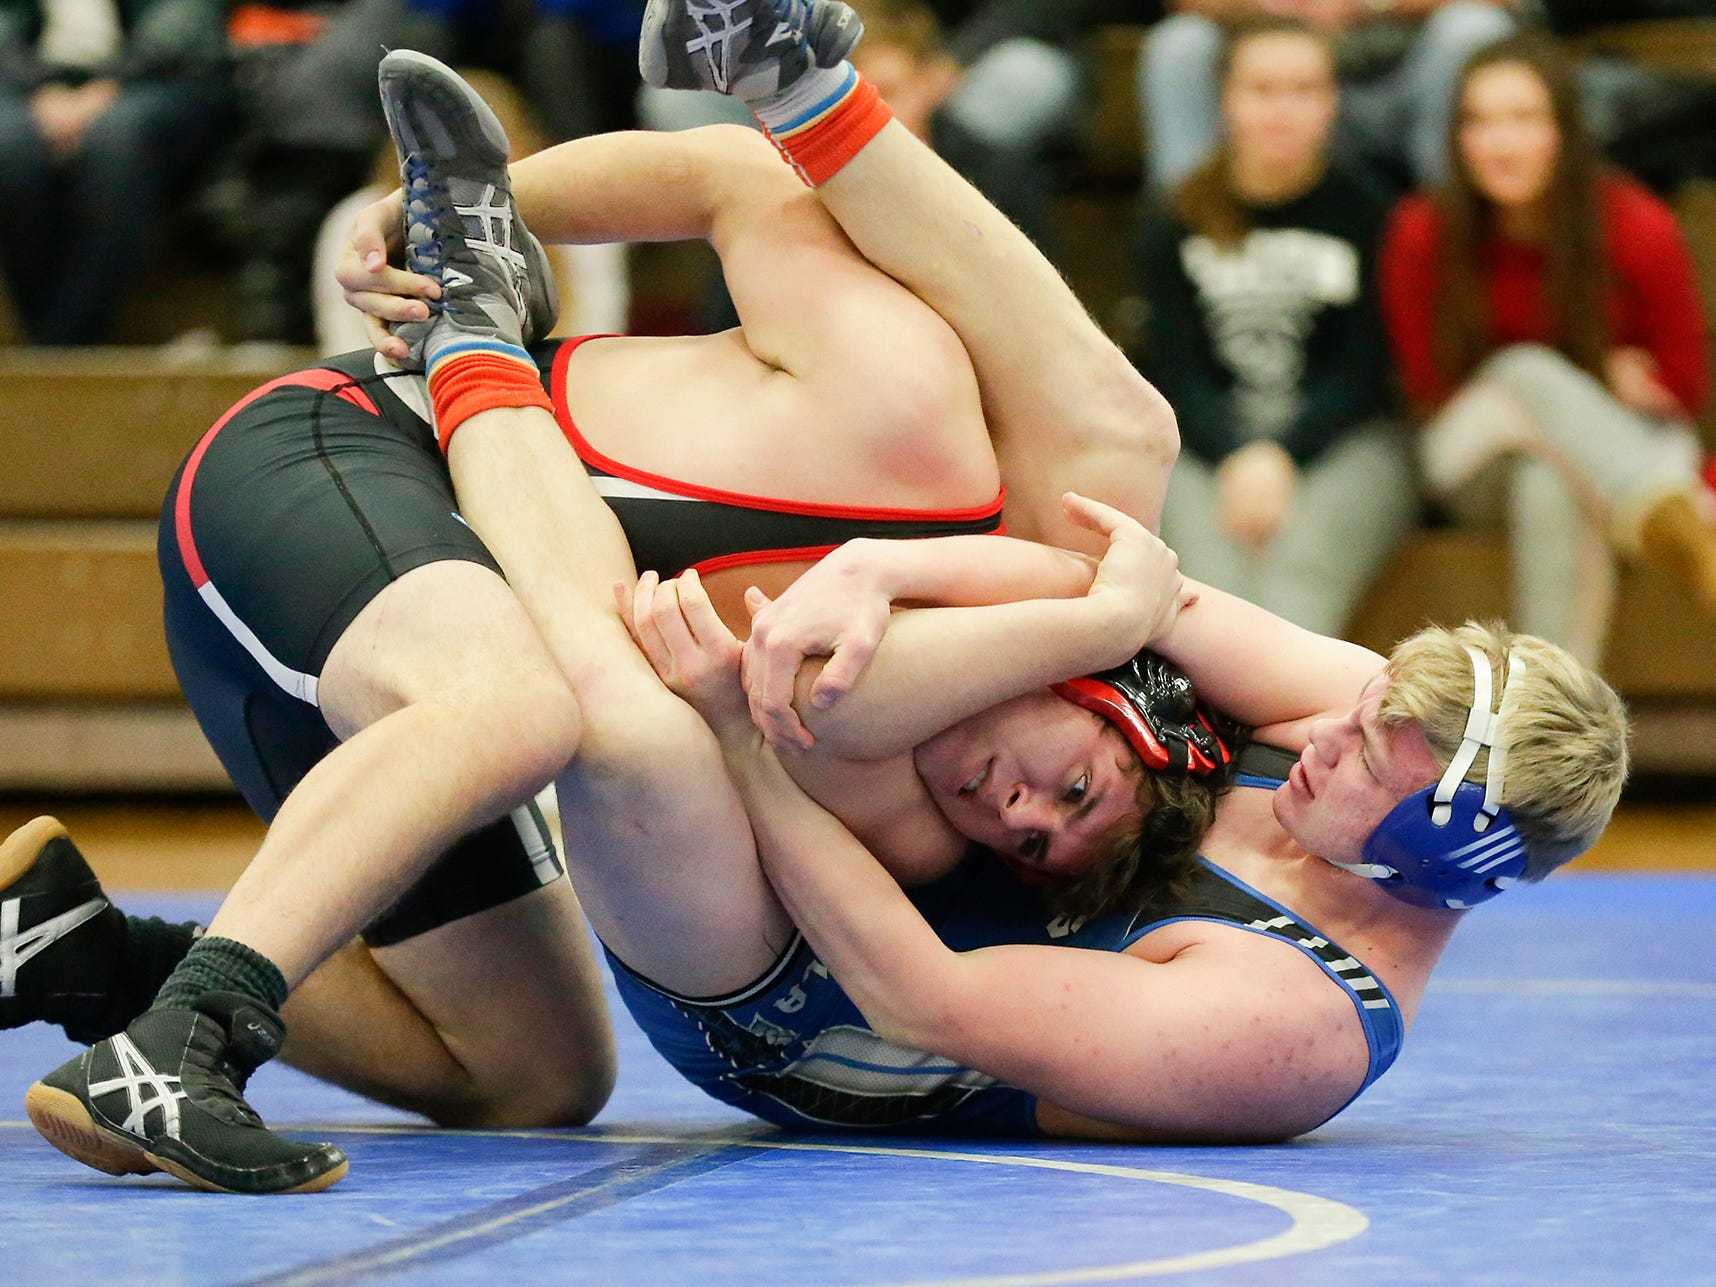 Winnebago Lutheran Academy's Noah Hoppe wrestles Alex Pilling of Lomira High School in the 220 pound weight class Thursday, January 17, 2019 in Fond du Lac. Hoppe won by a pin and Lomira won the meet 51-22. Doug Raflik/USA TODAY NETWORK-Wisconsin